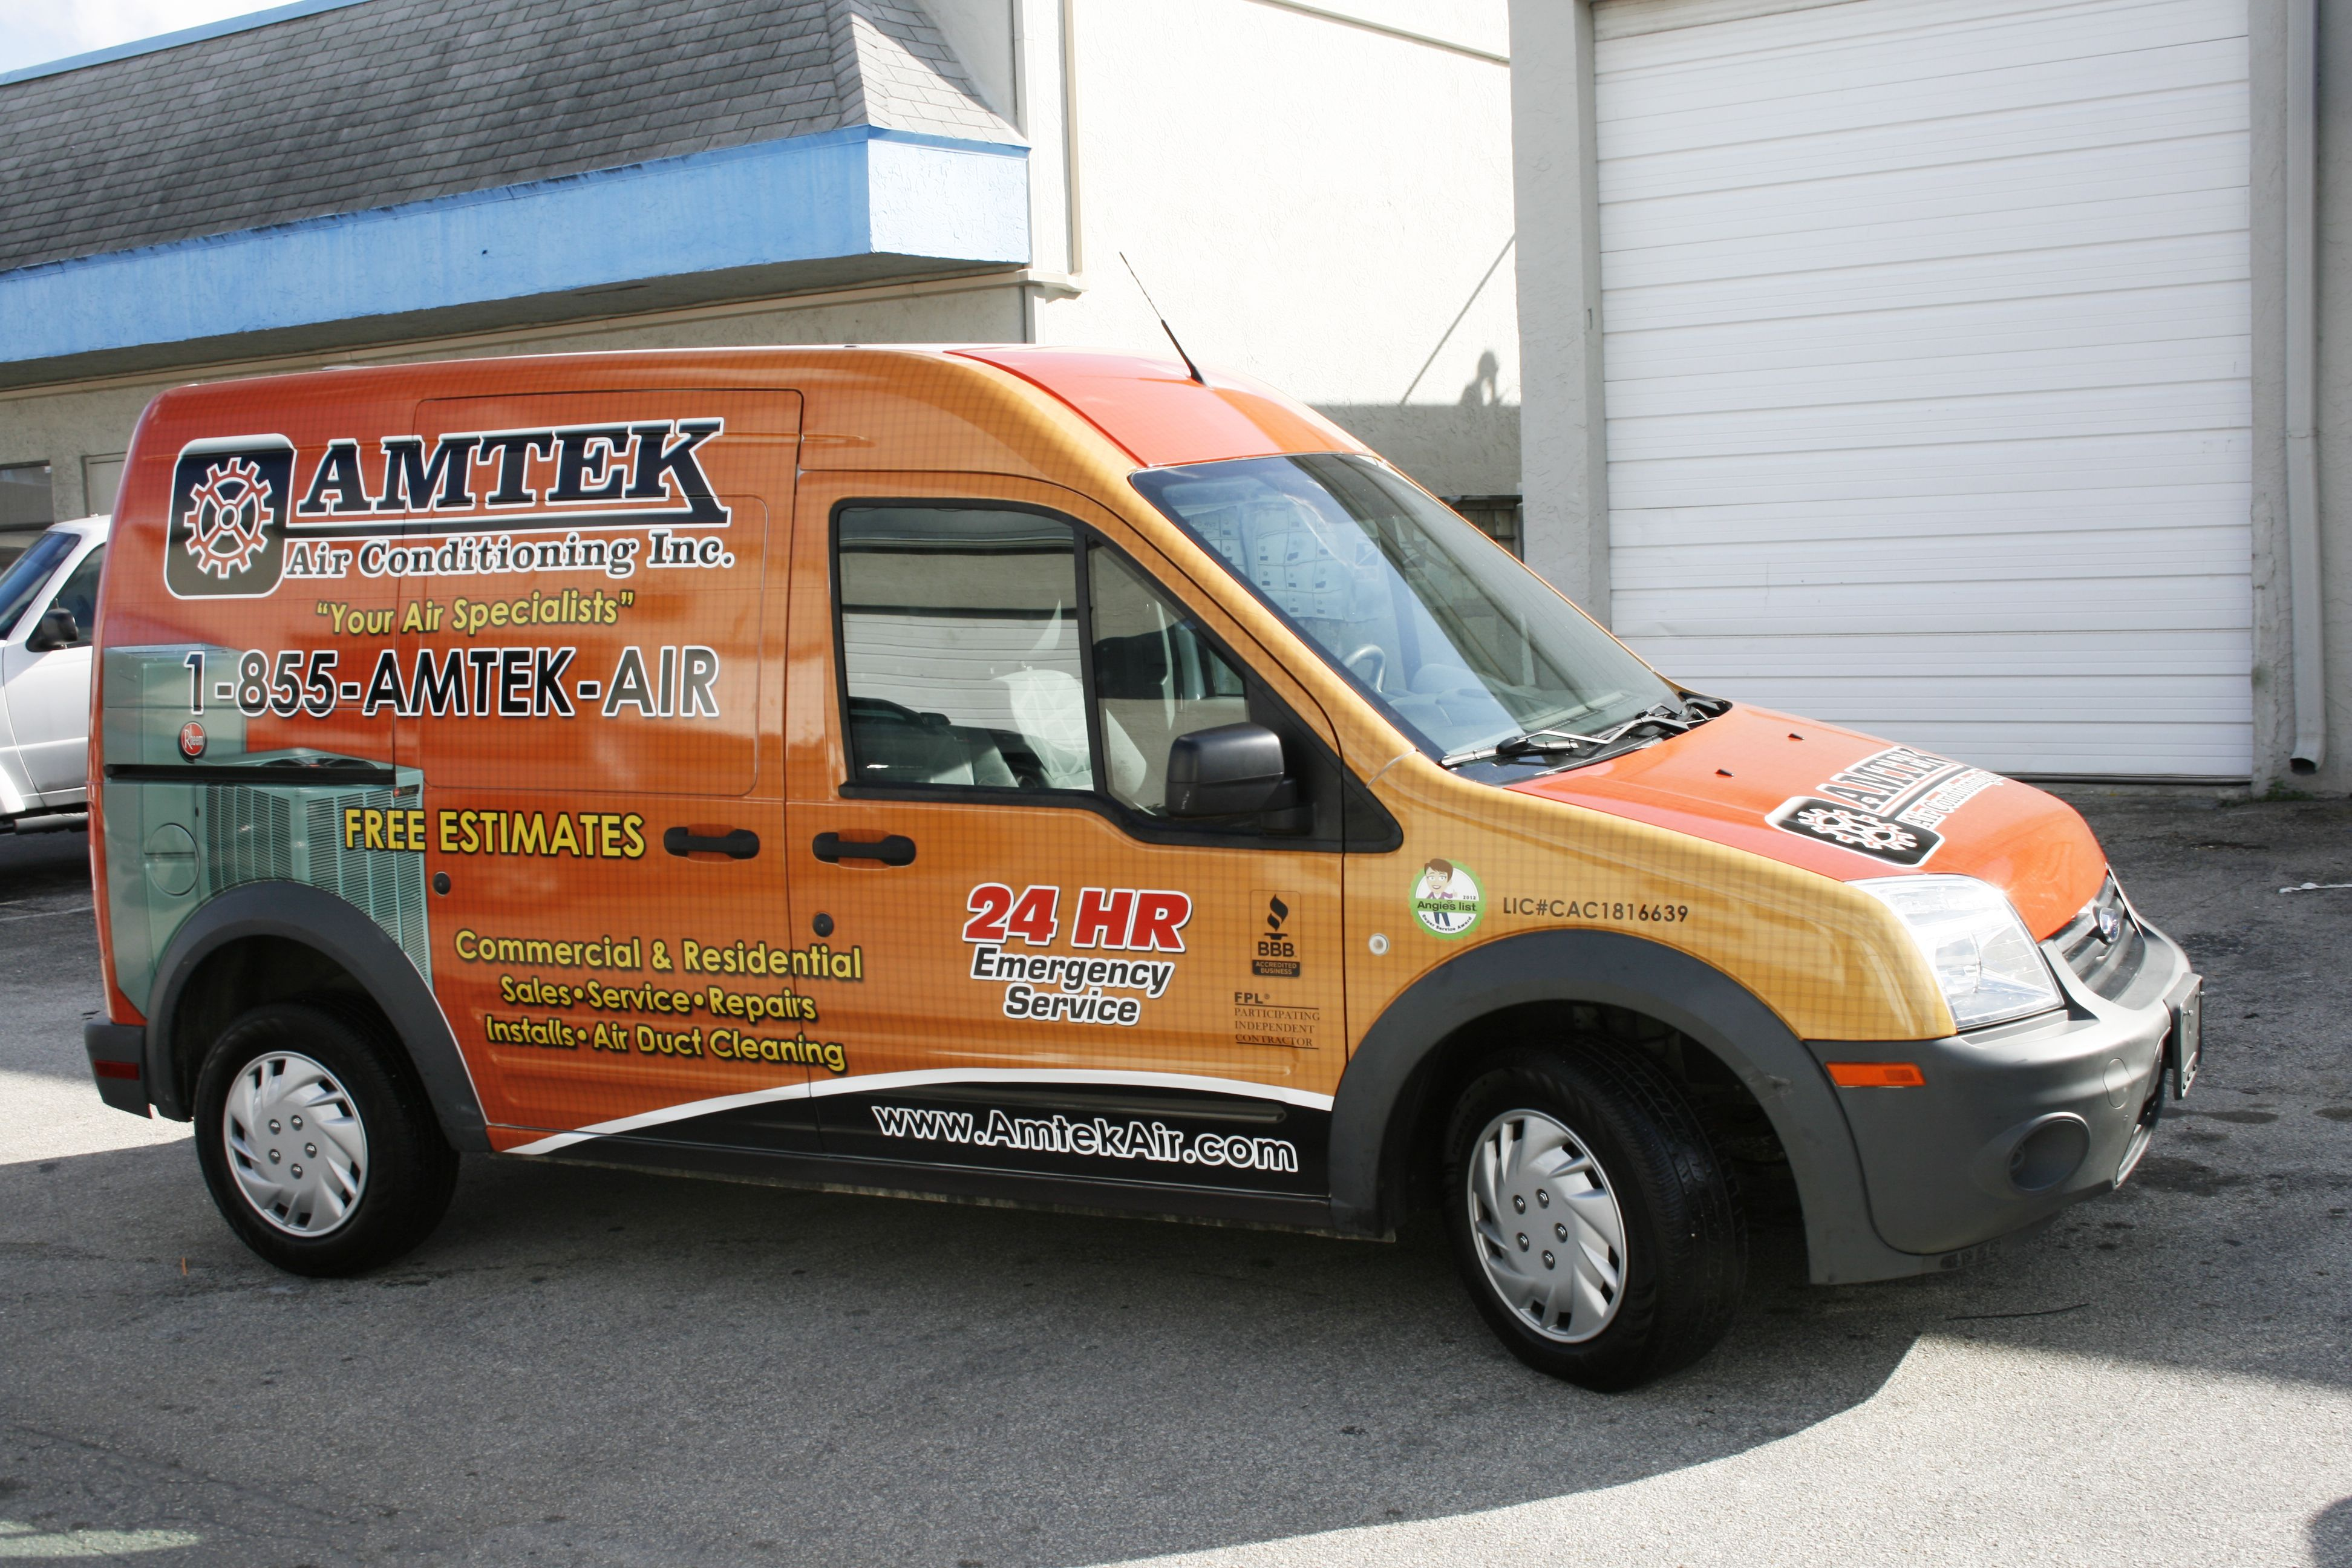 Ford transit connect wrap graphics port st lucie florida http www carwrapsolutions